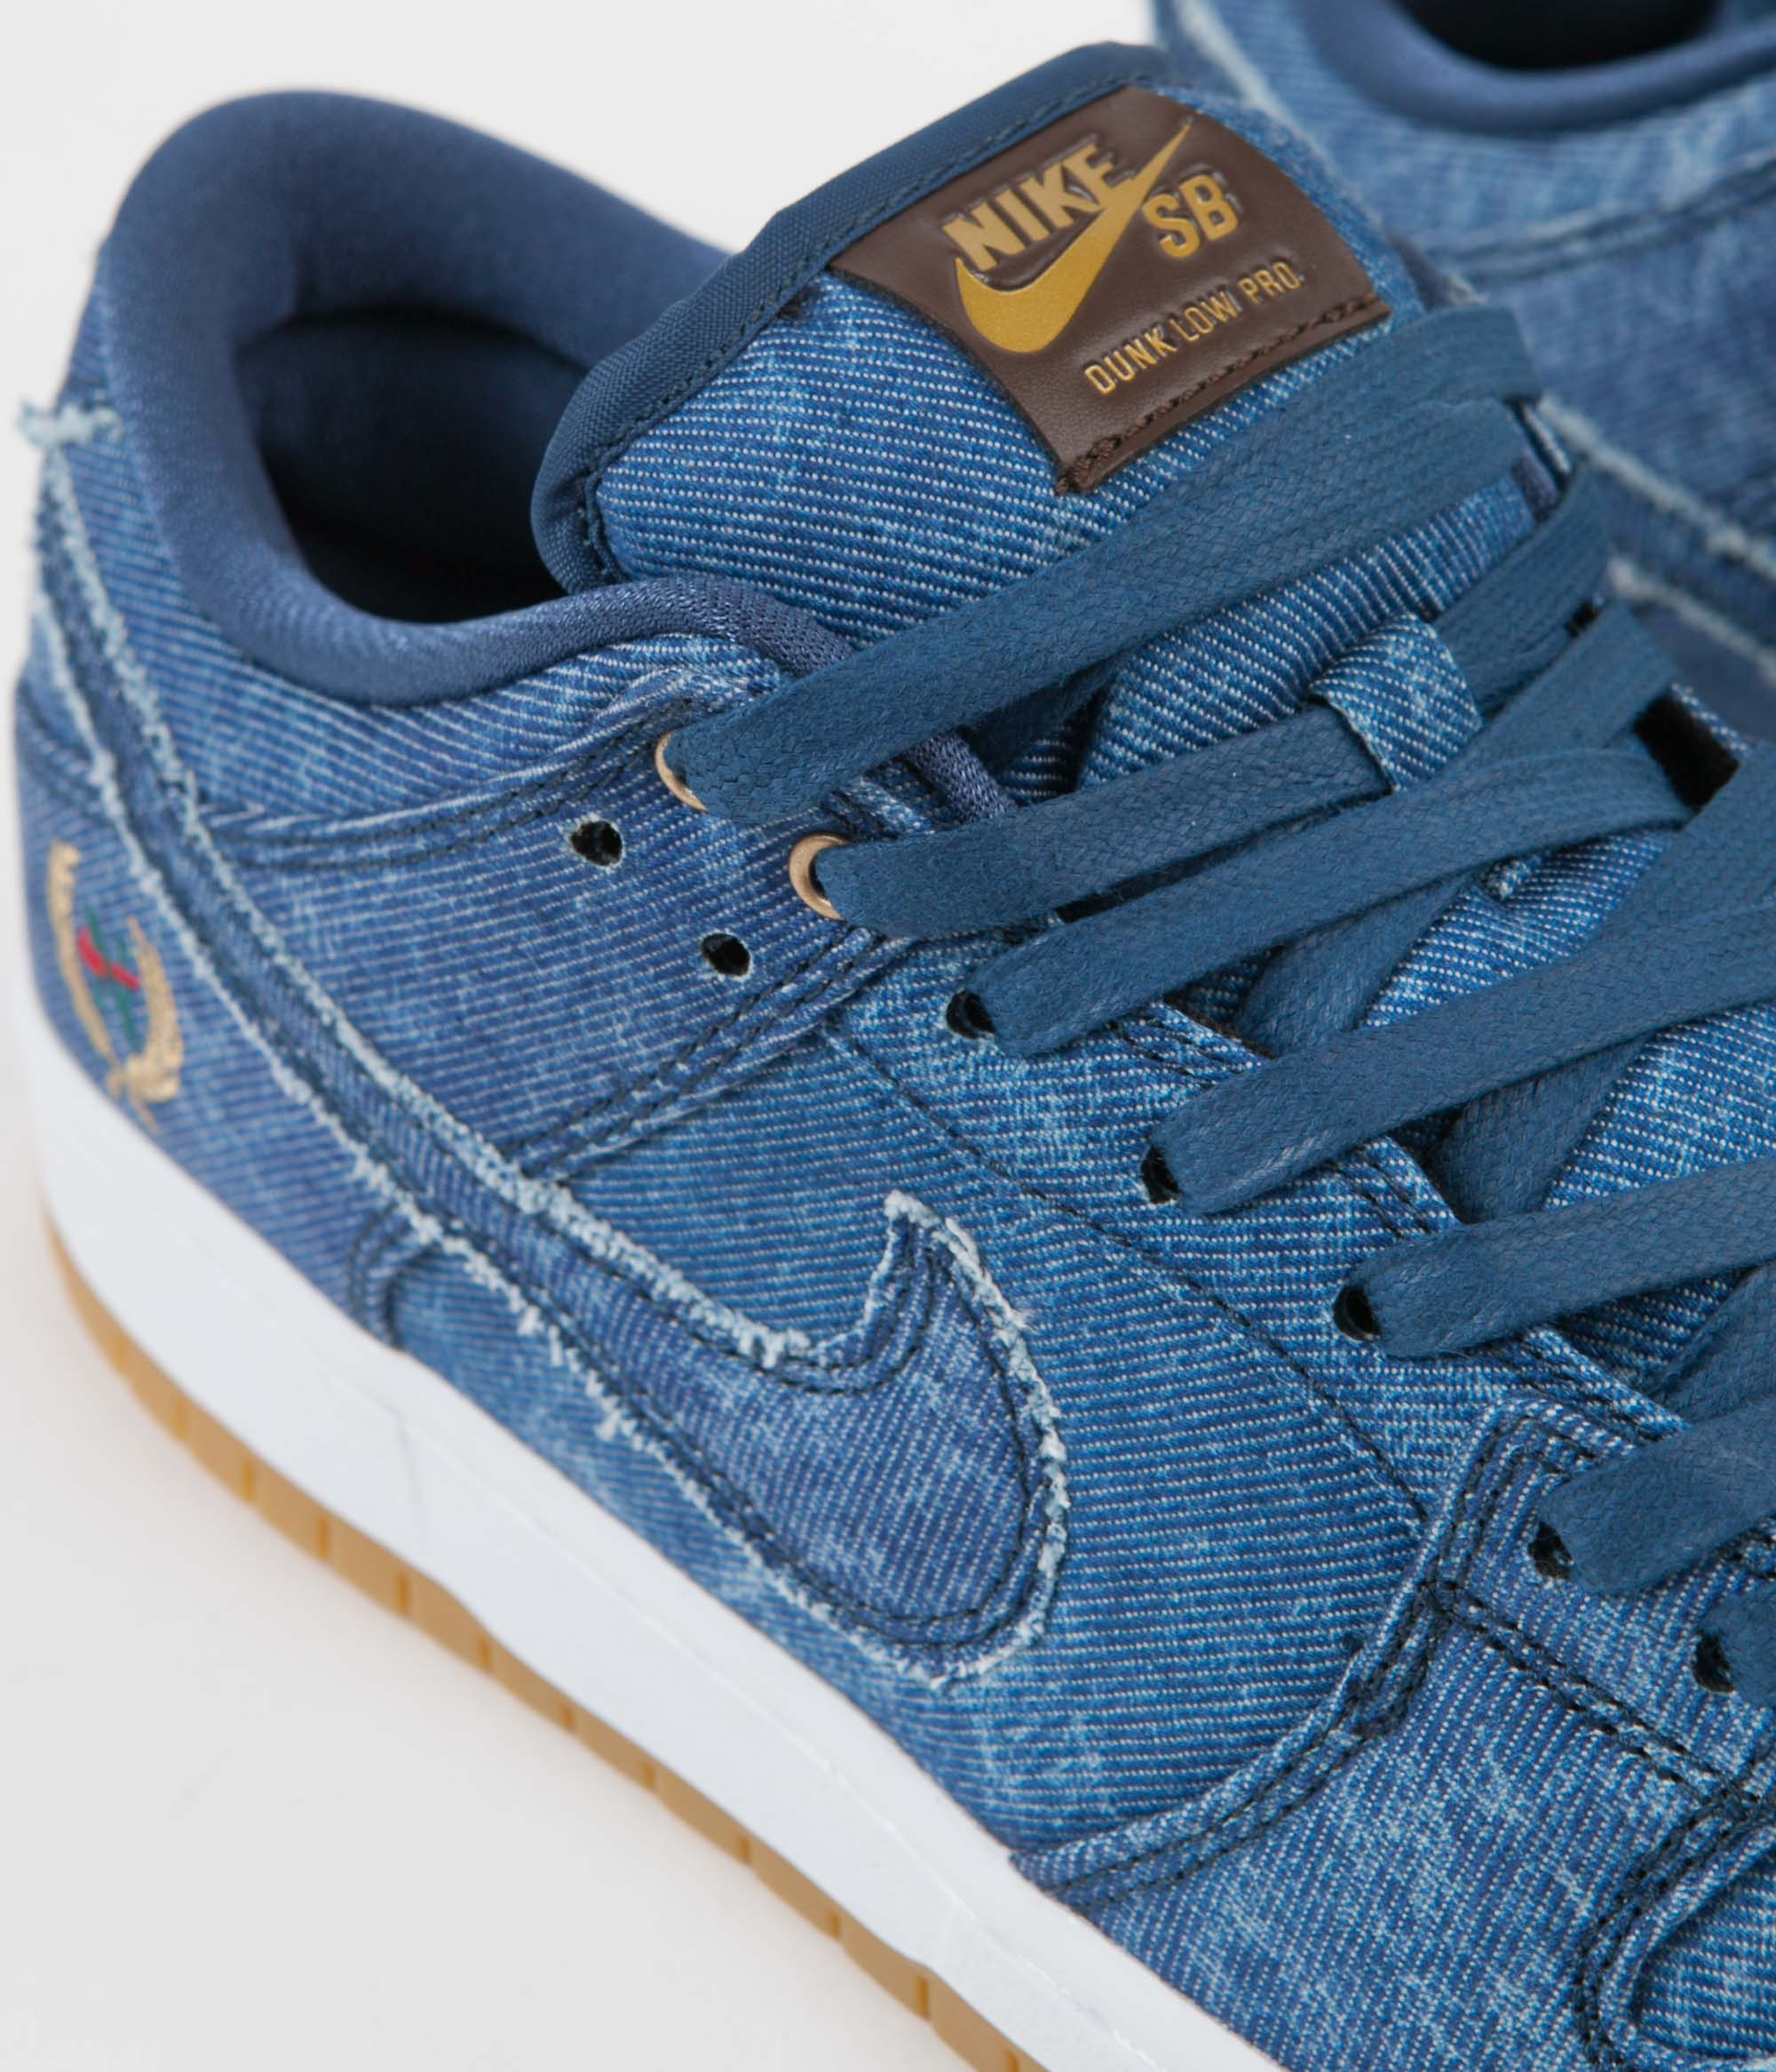 Nike SB Dunk Low Pro Shoes - Utility Blue / Utility Blue - White